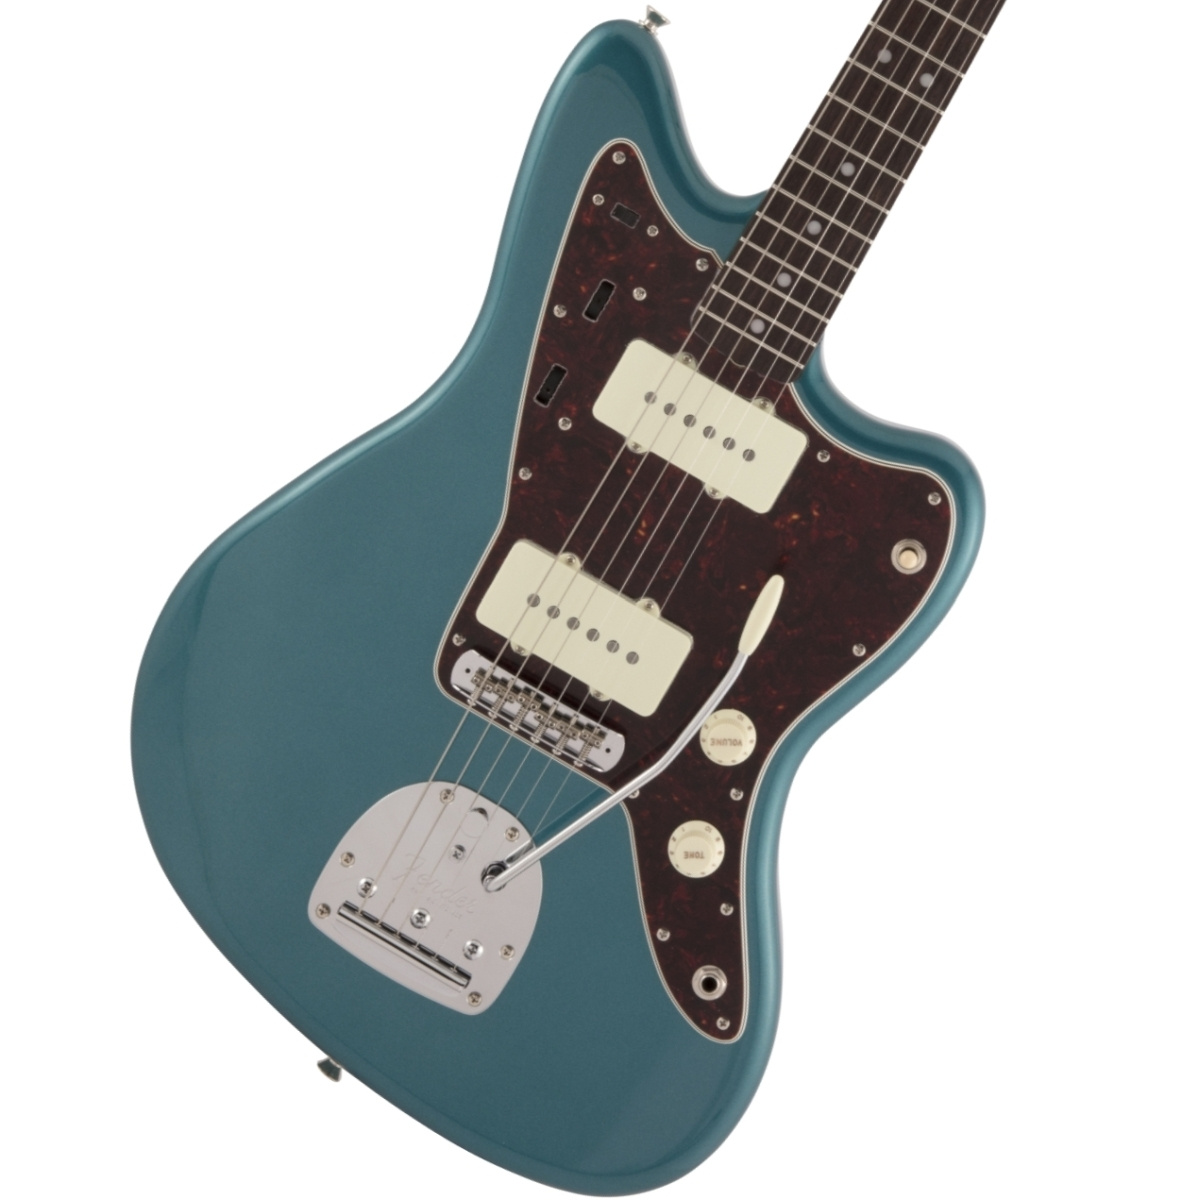 Fender / 2020 Collection Made in Japan Traditional 60s Jazzmaster Rosewood Fingerboard Ocean Turquoise Metallic フェンダー【2020年内限定モデル】【御茶ノ水本店】